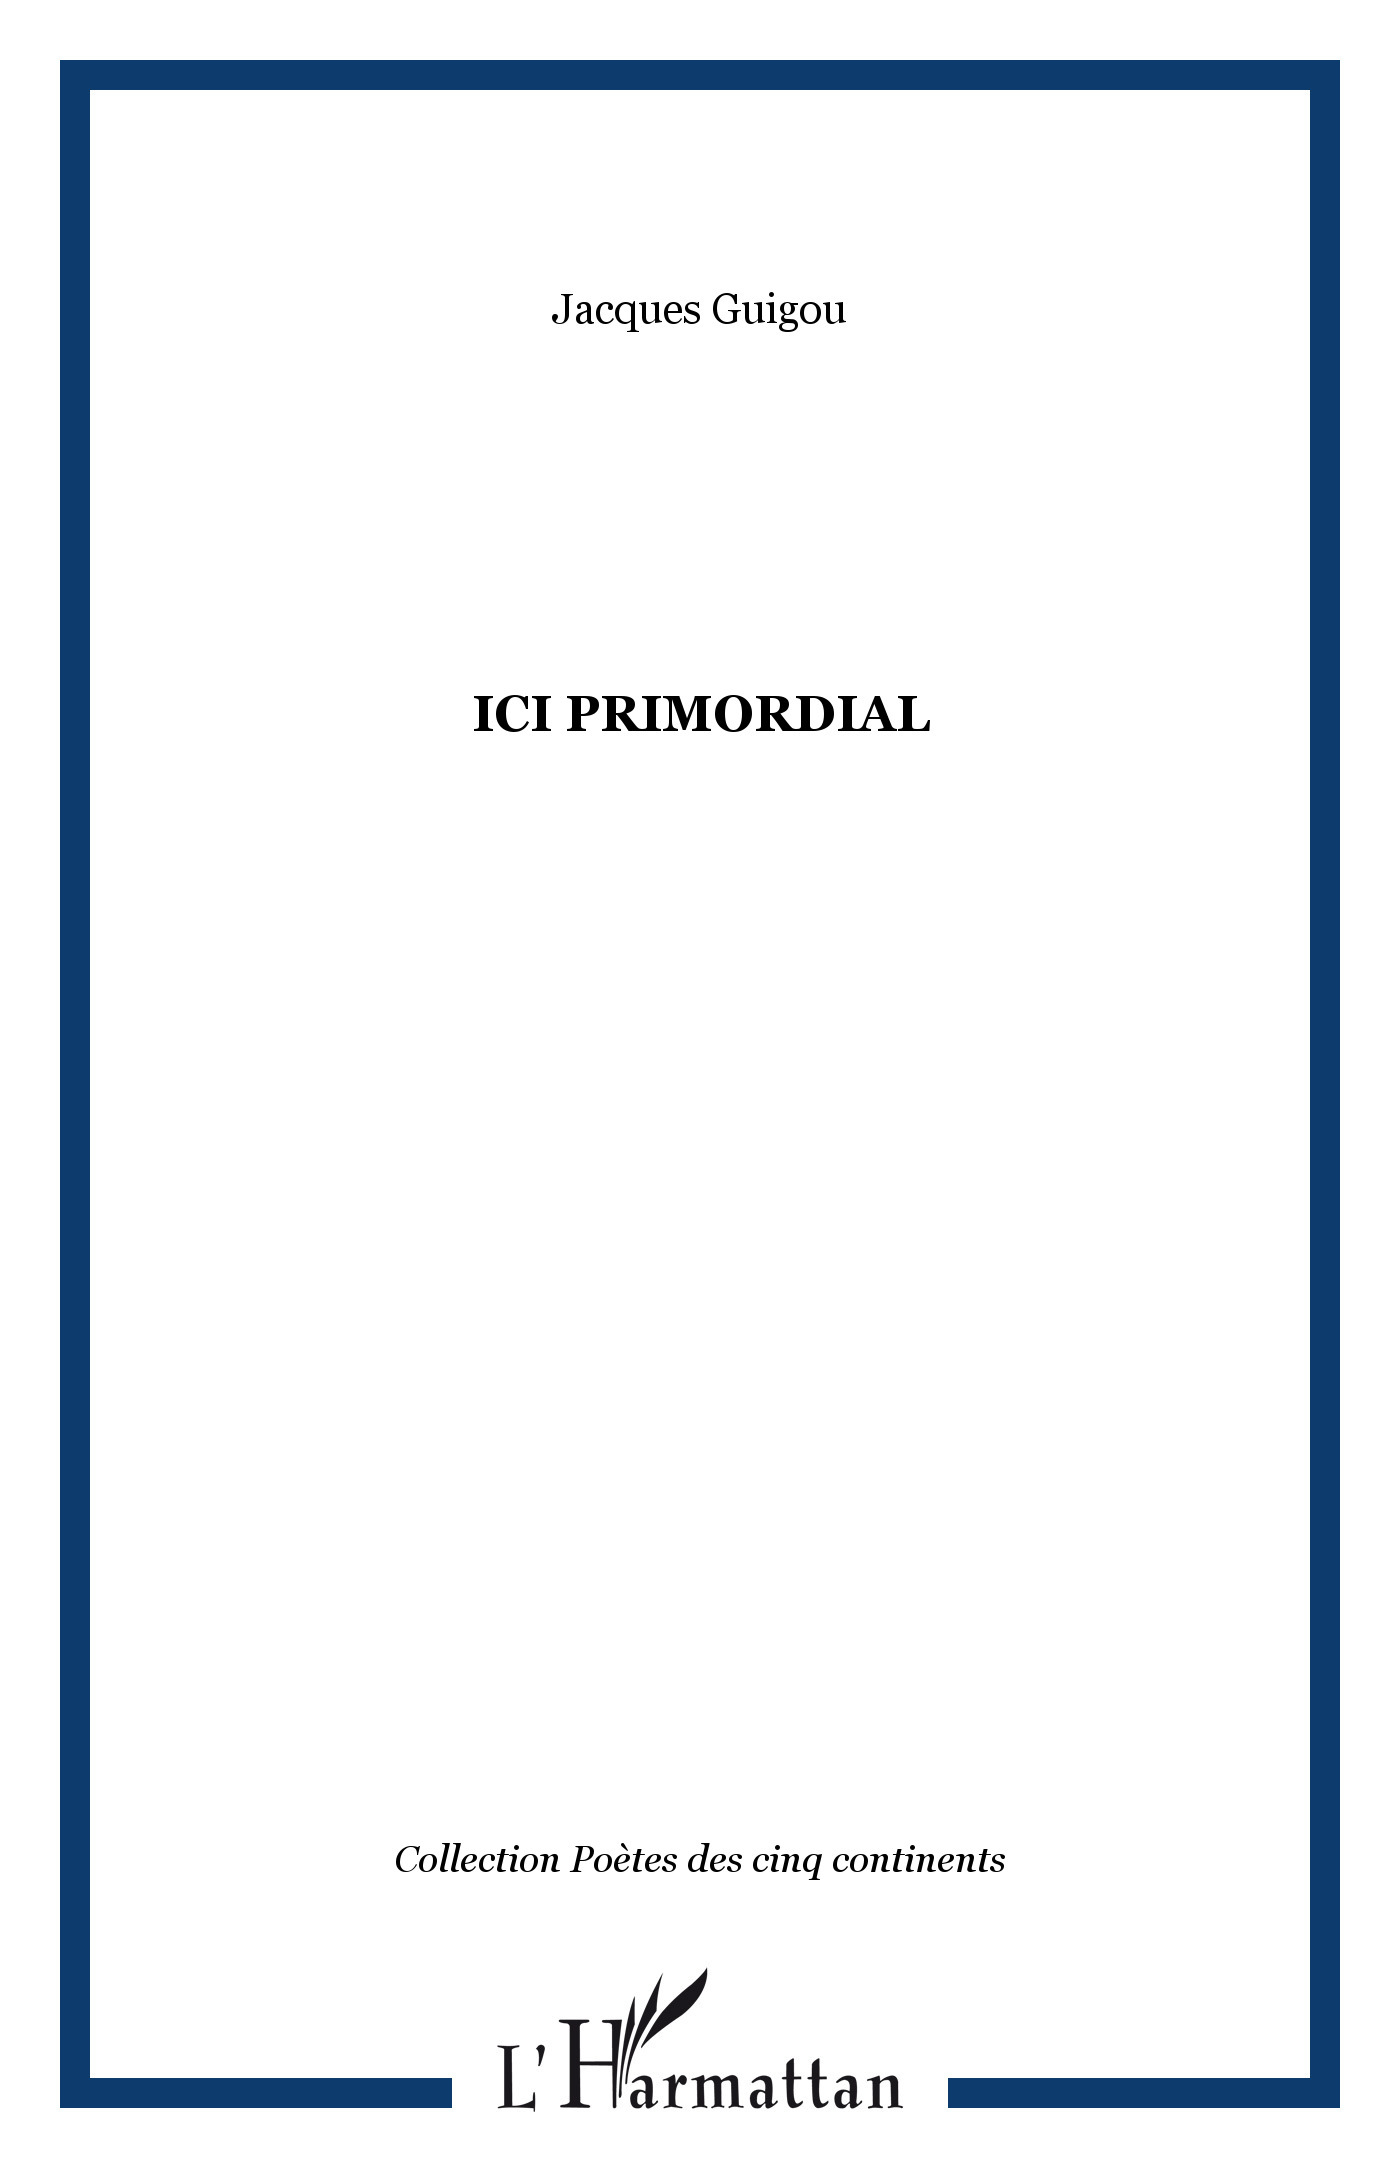 ICI PRIMORDIAL